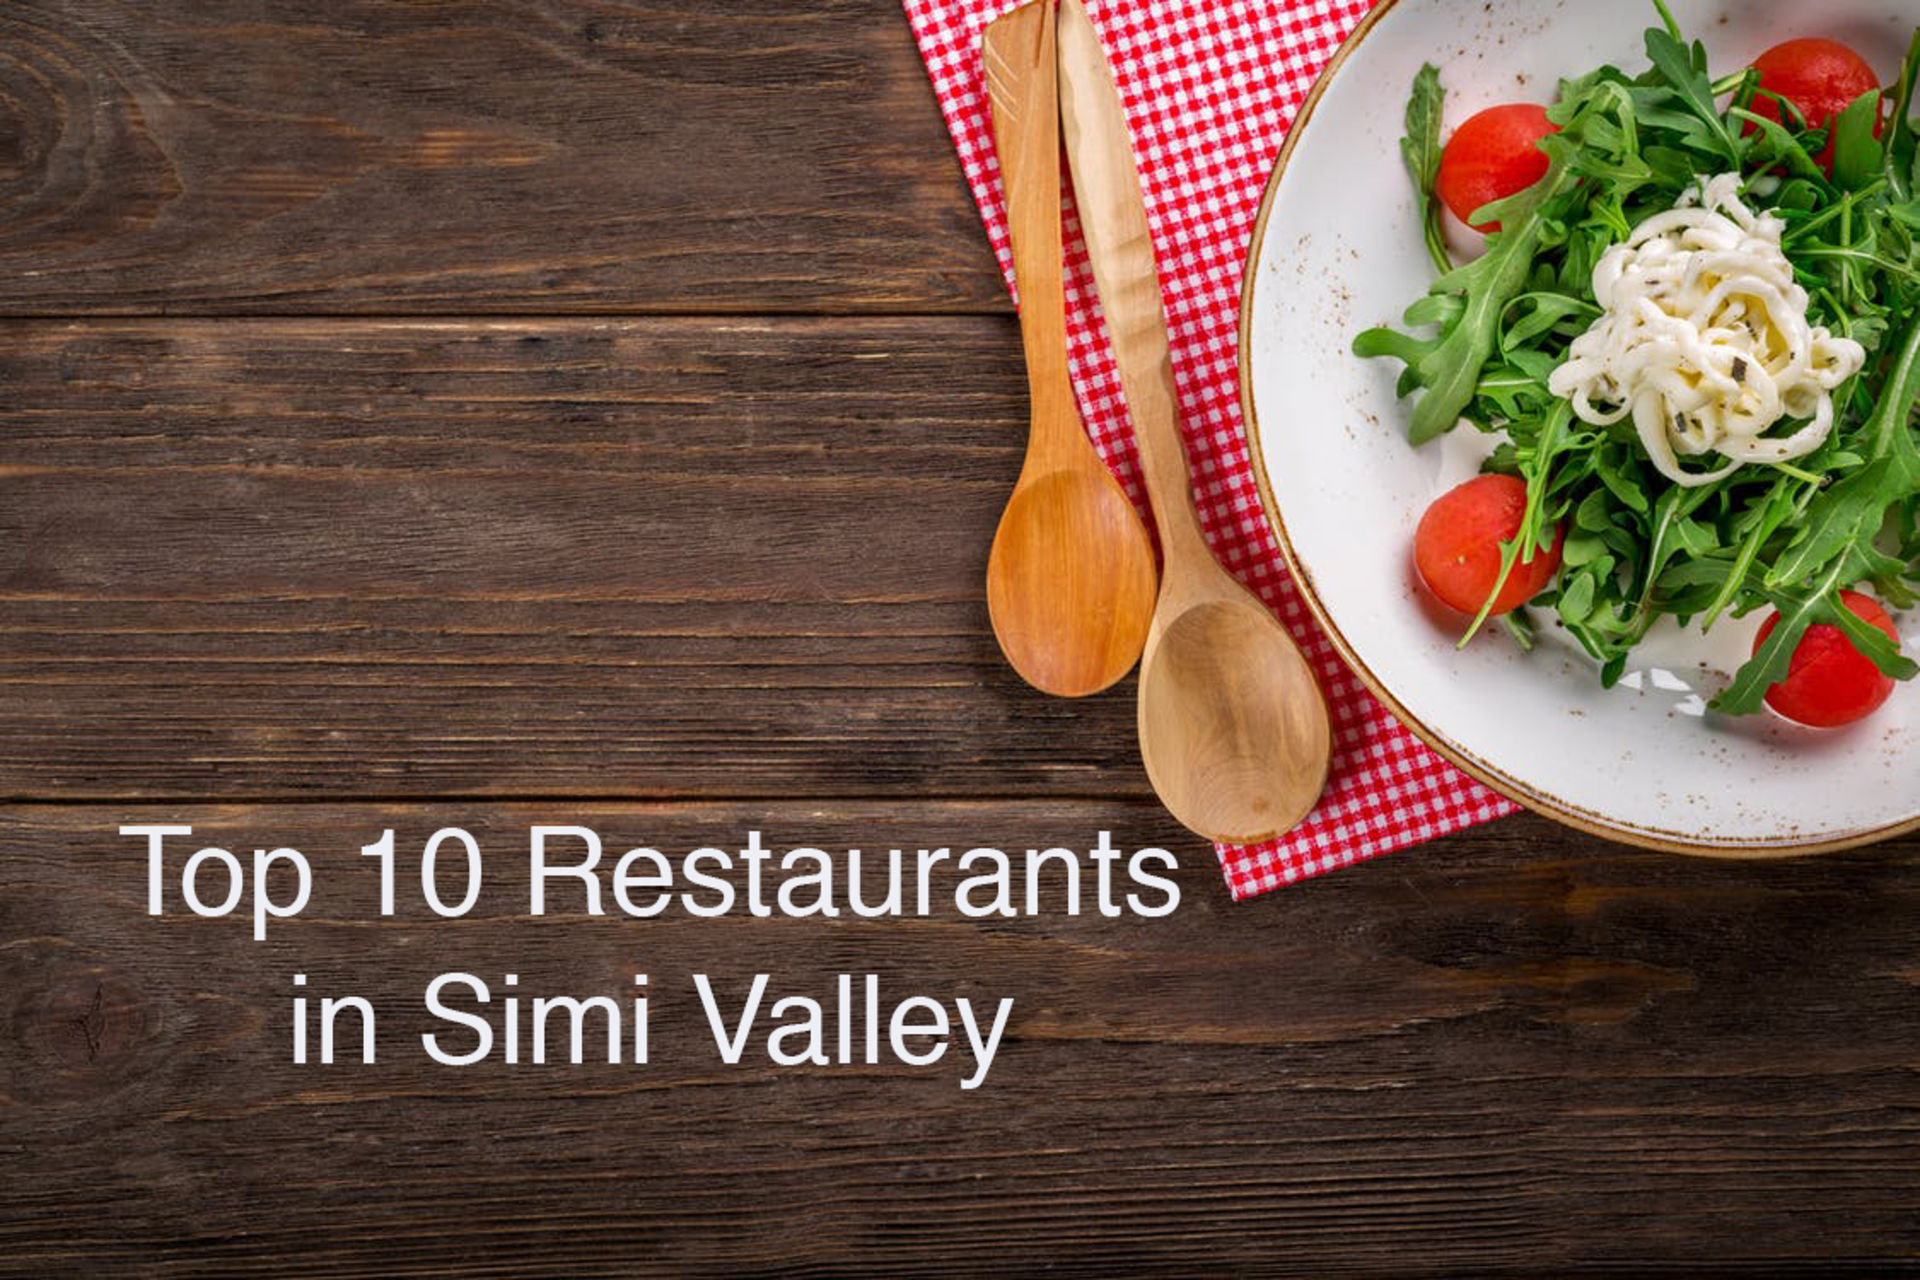 """The """"10 Best Restaurants in Simi Valley"""" According to Yelp"""